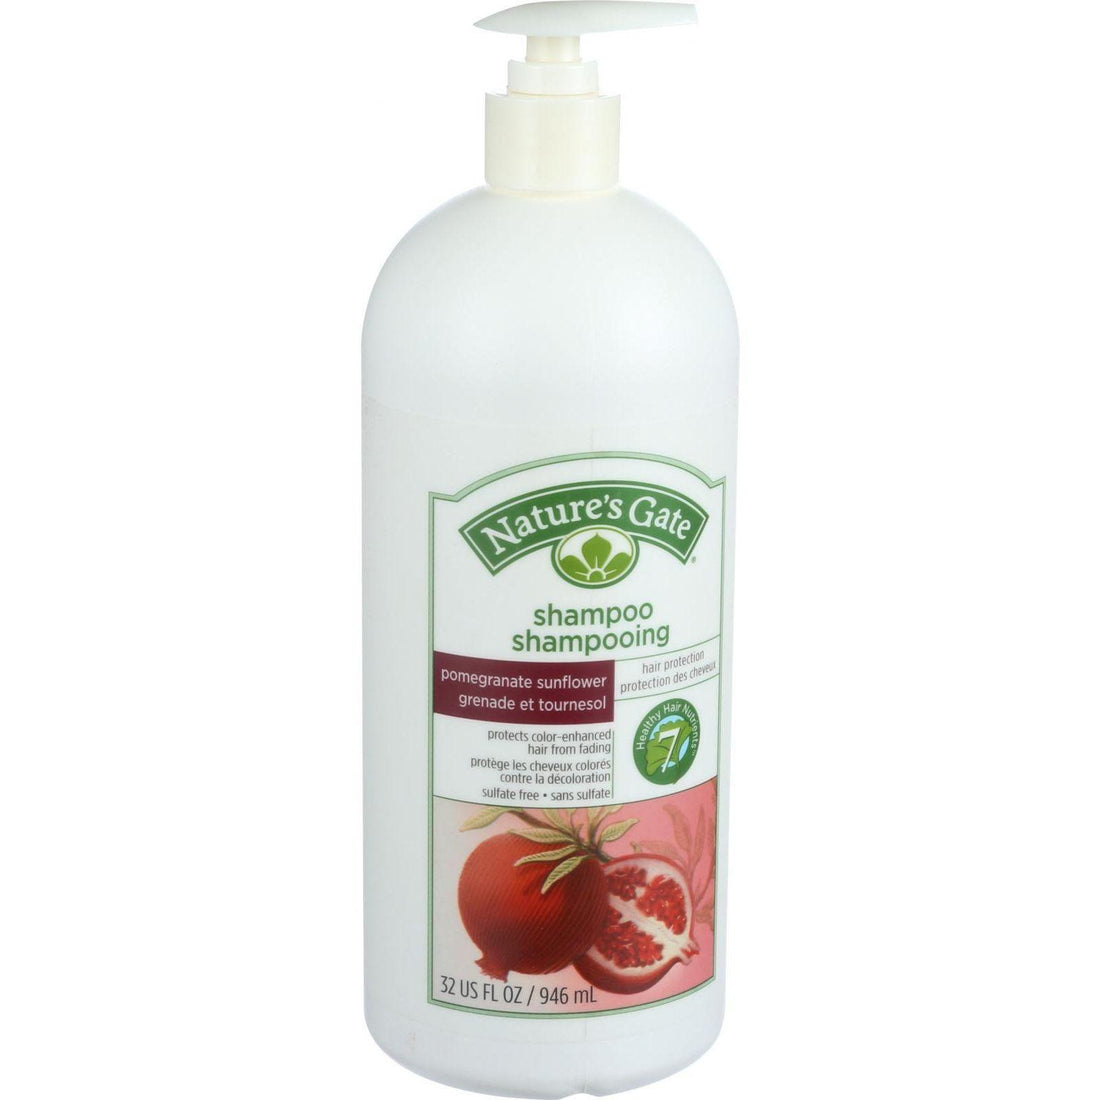 Mother Mantis: Nature's Gate Shampoo - Pomegranate And Sunflower Hair Defense - 32 Oz Nature's Gate